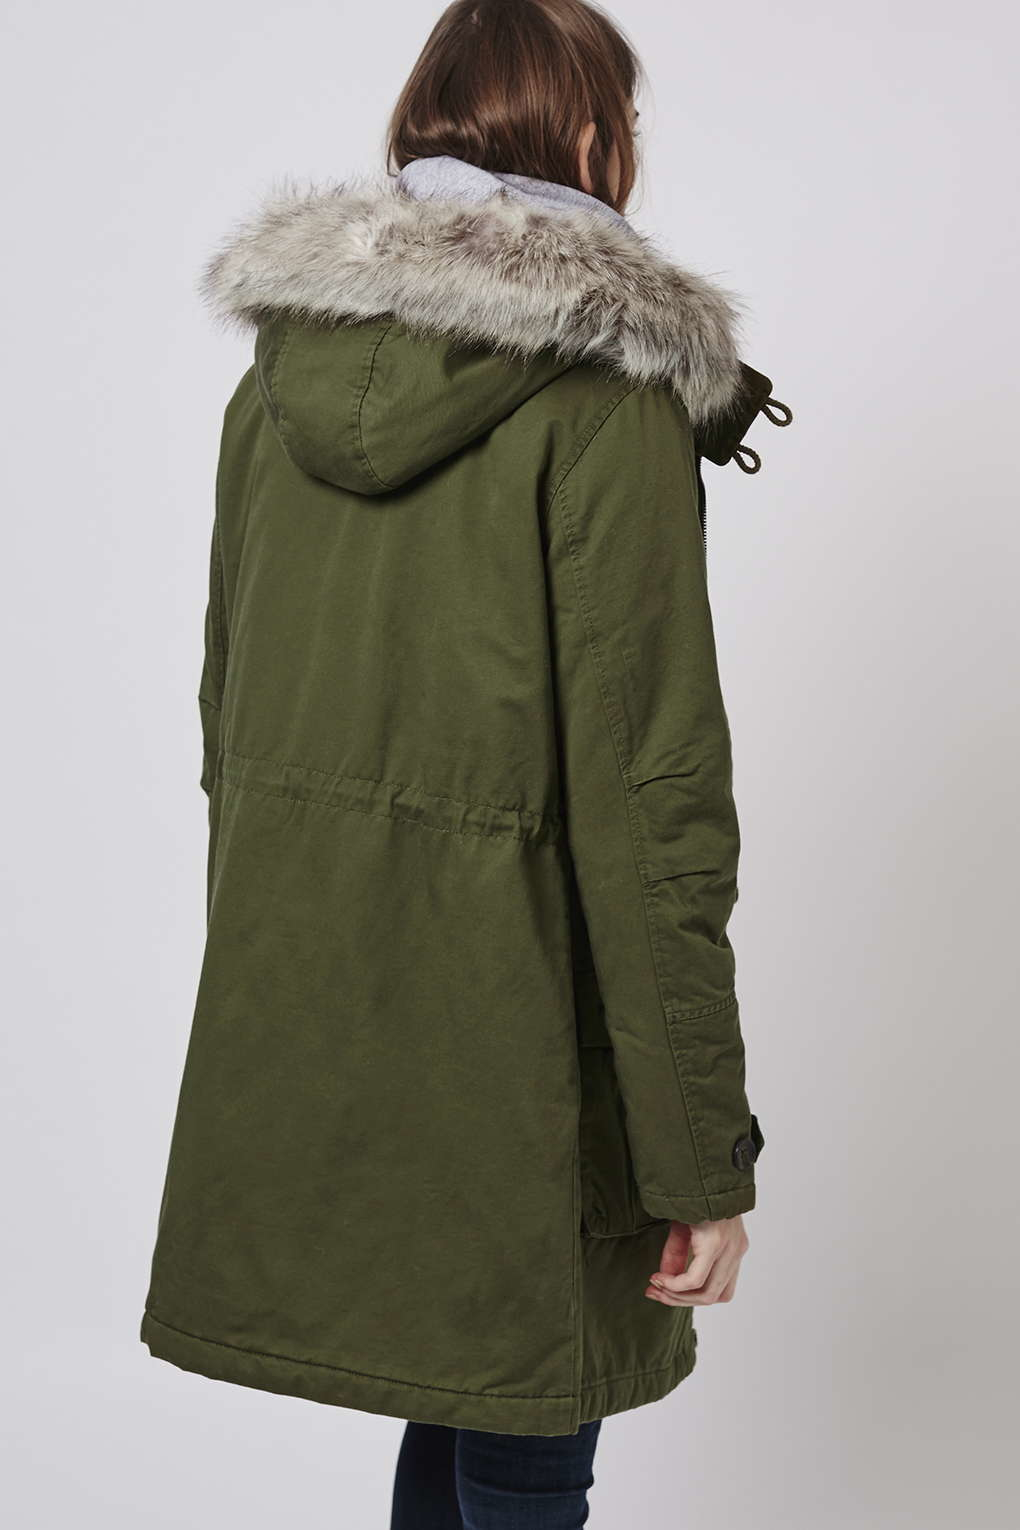 Topshop Tall Long Padded Parka Jacket in Green | Lyst